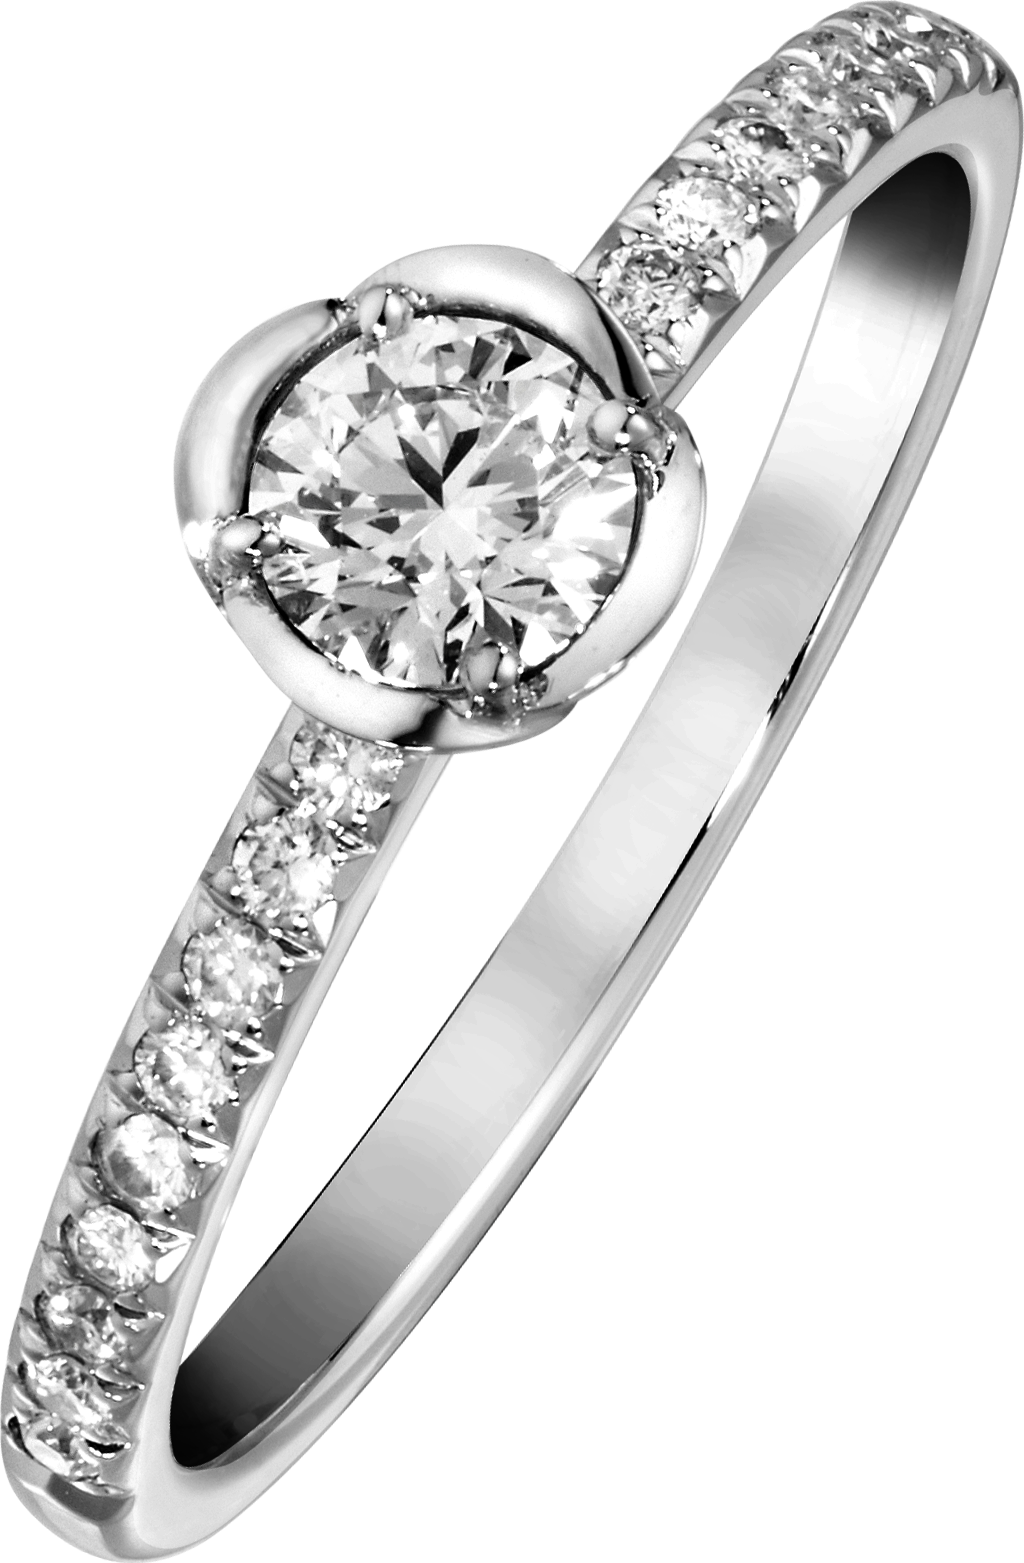 Engagement ring G34UR200 in platinum set with central